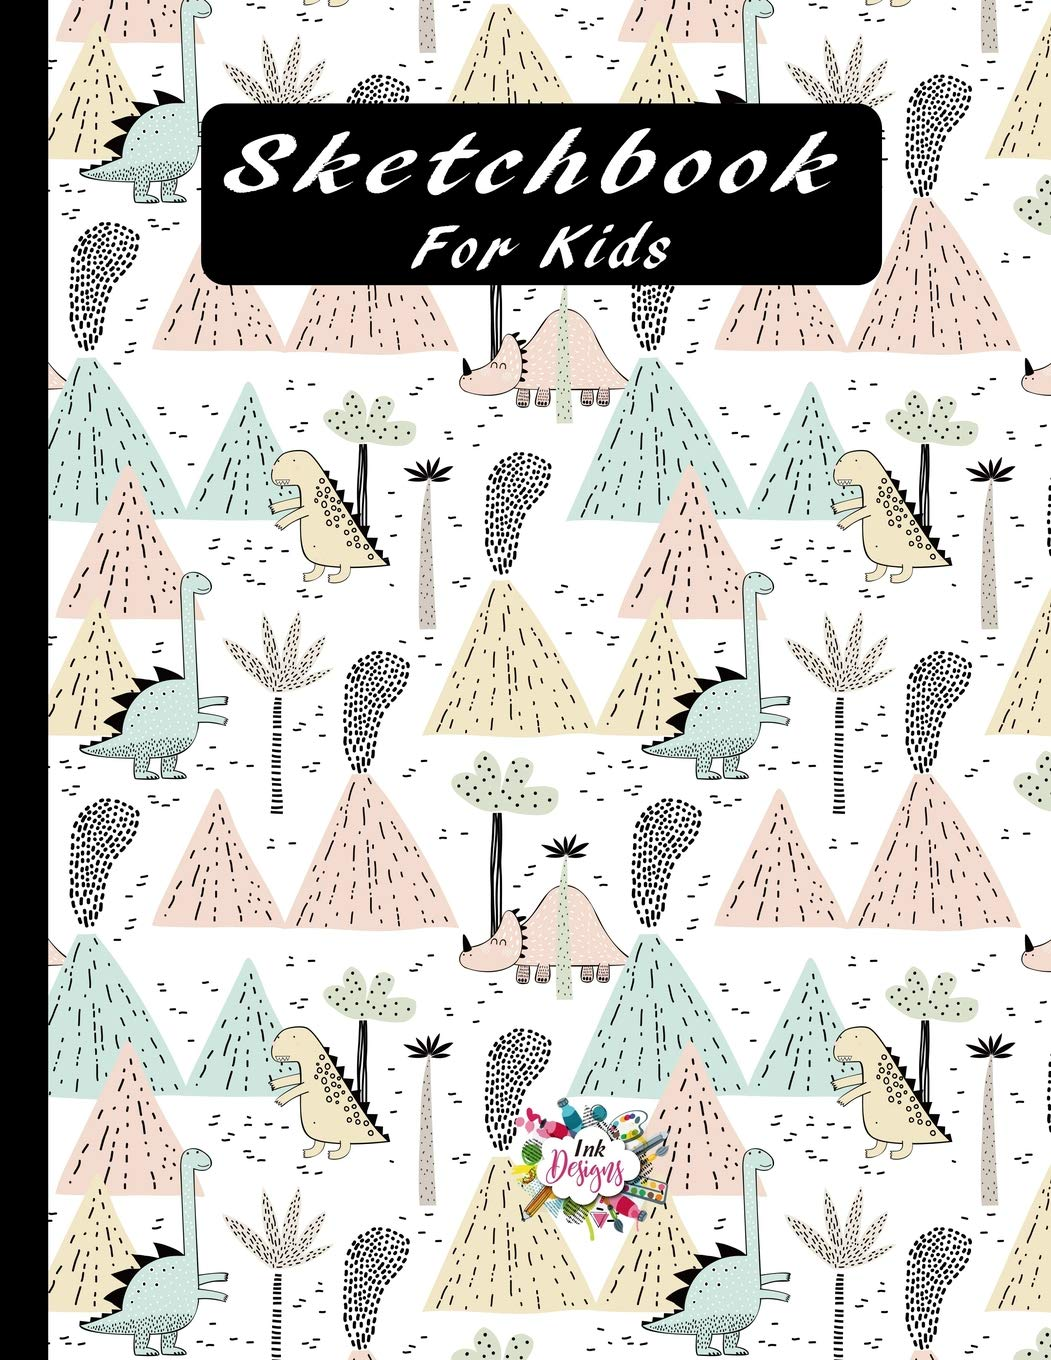 Sketchbook for Kids: A Large Notebook With Blank Pages for